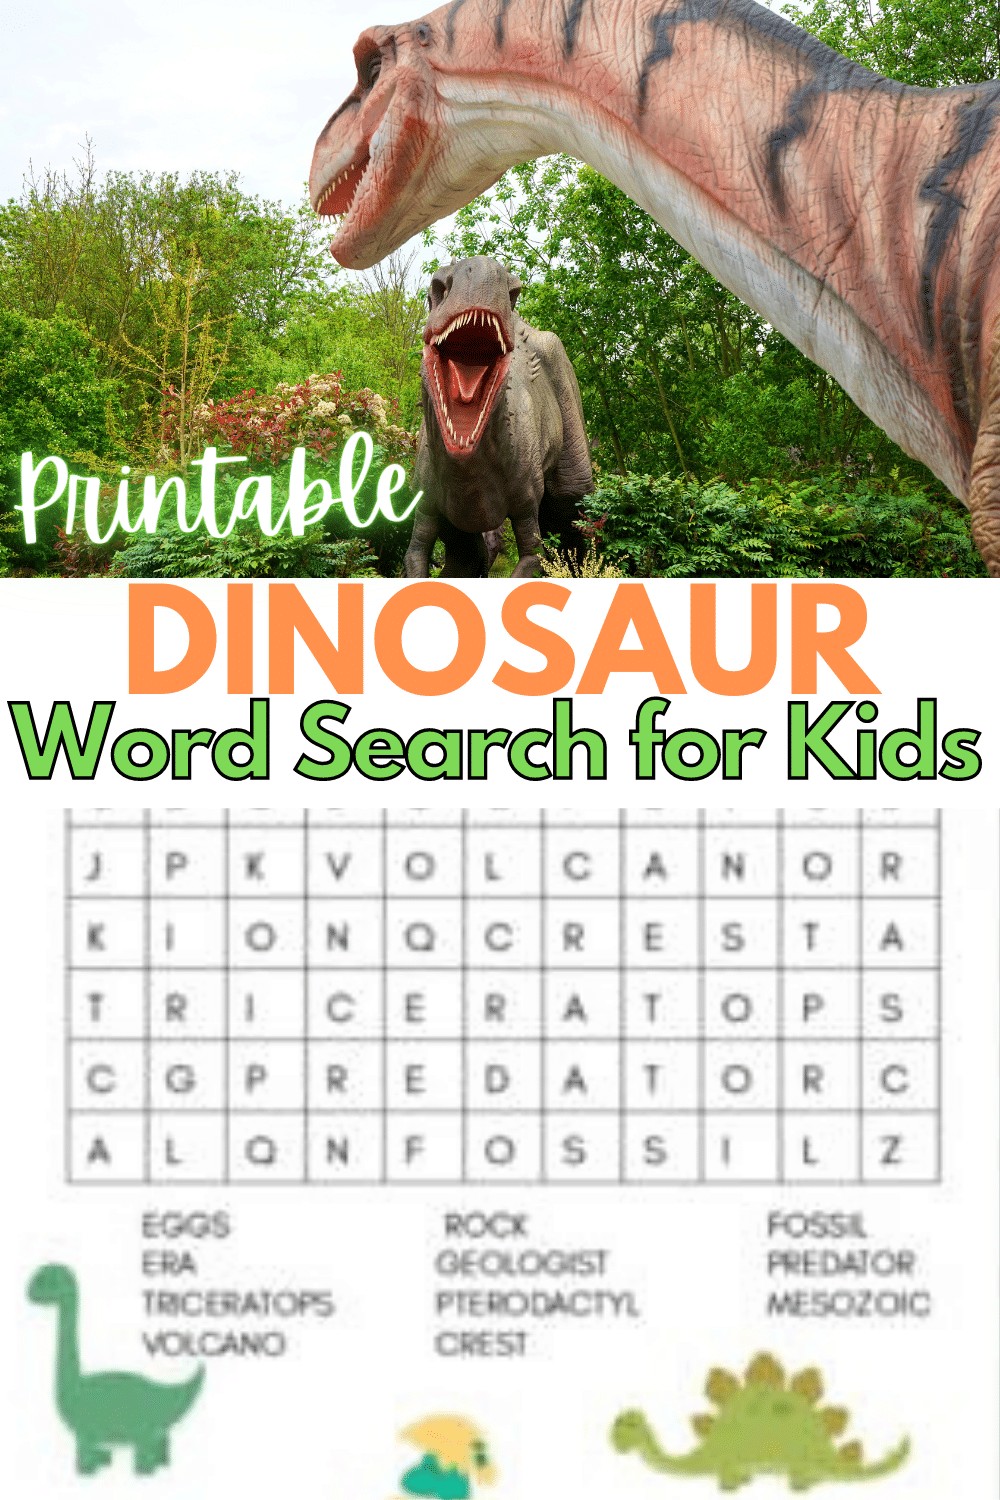 This free printable dinosaur word search for kids is fun and perfect for those dinosaur-obsessed kids. A great educational activity that is all about dinos. #dinosaurs #wordsearch #printables via @wondermomwannab